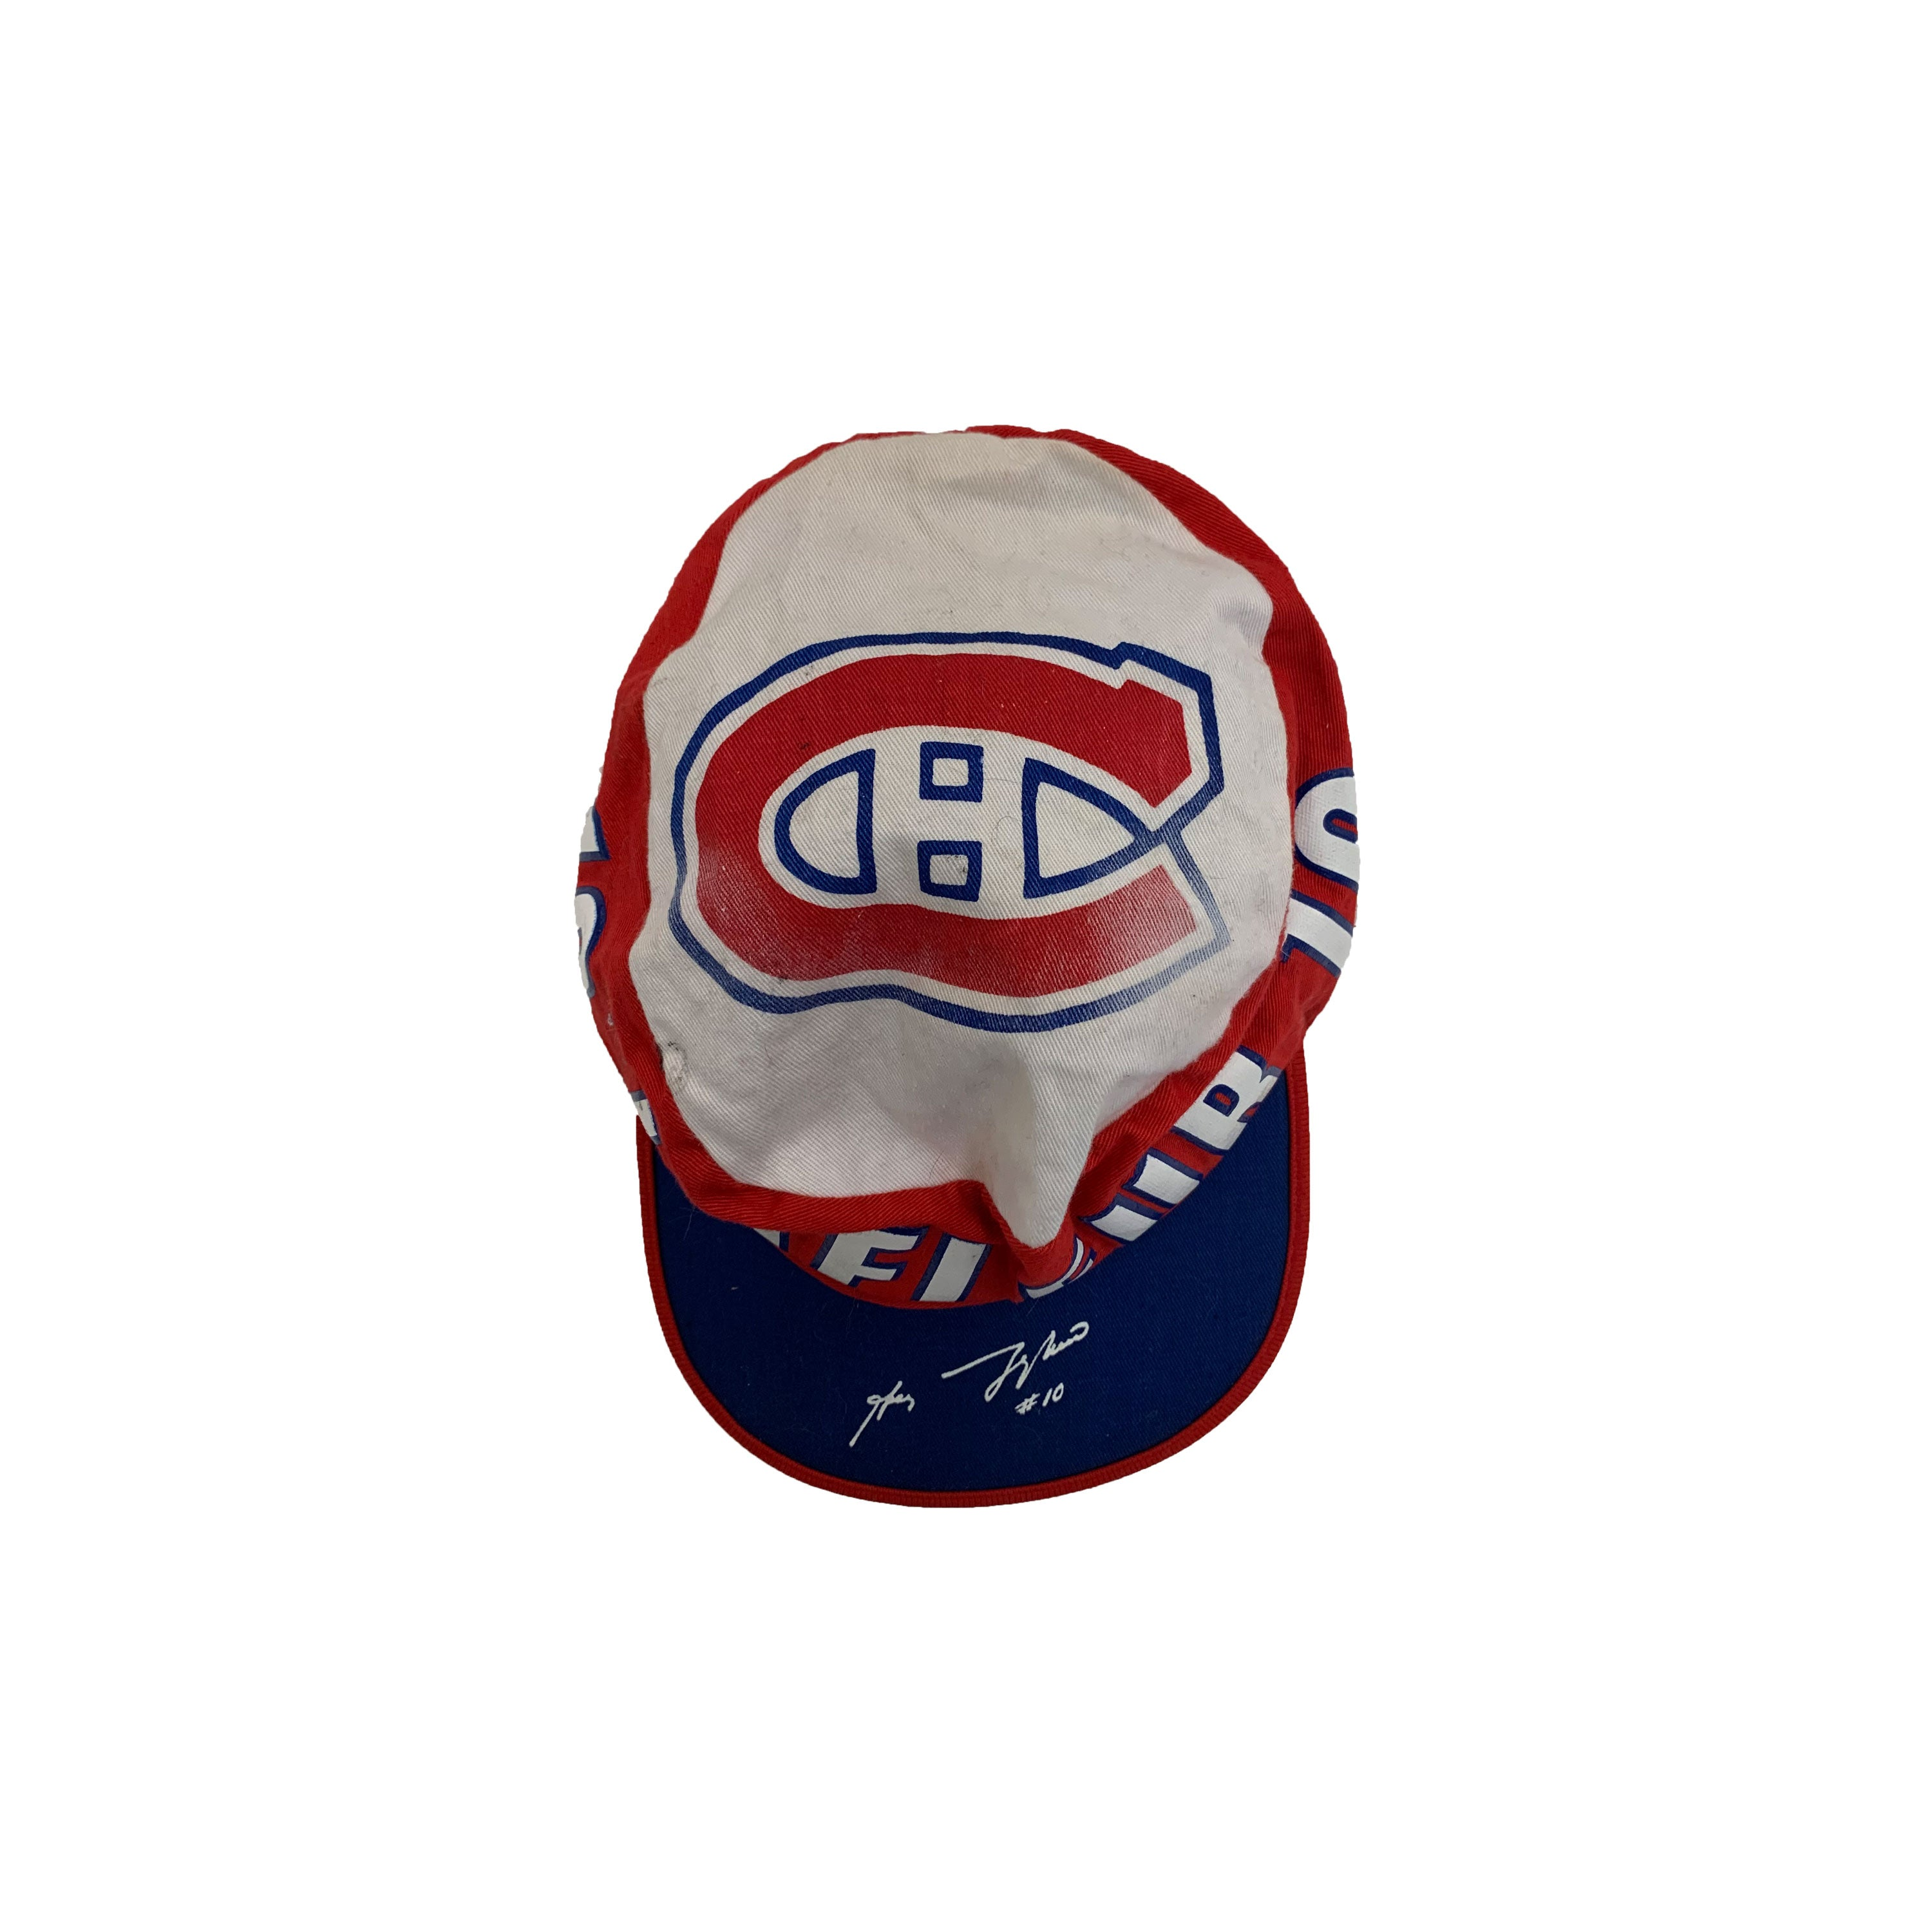 Lafleur Retirement Night Souvenir Cap